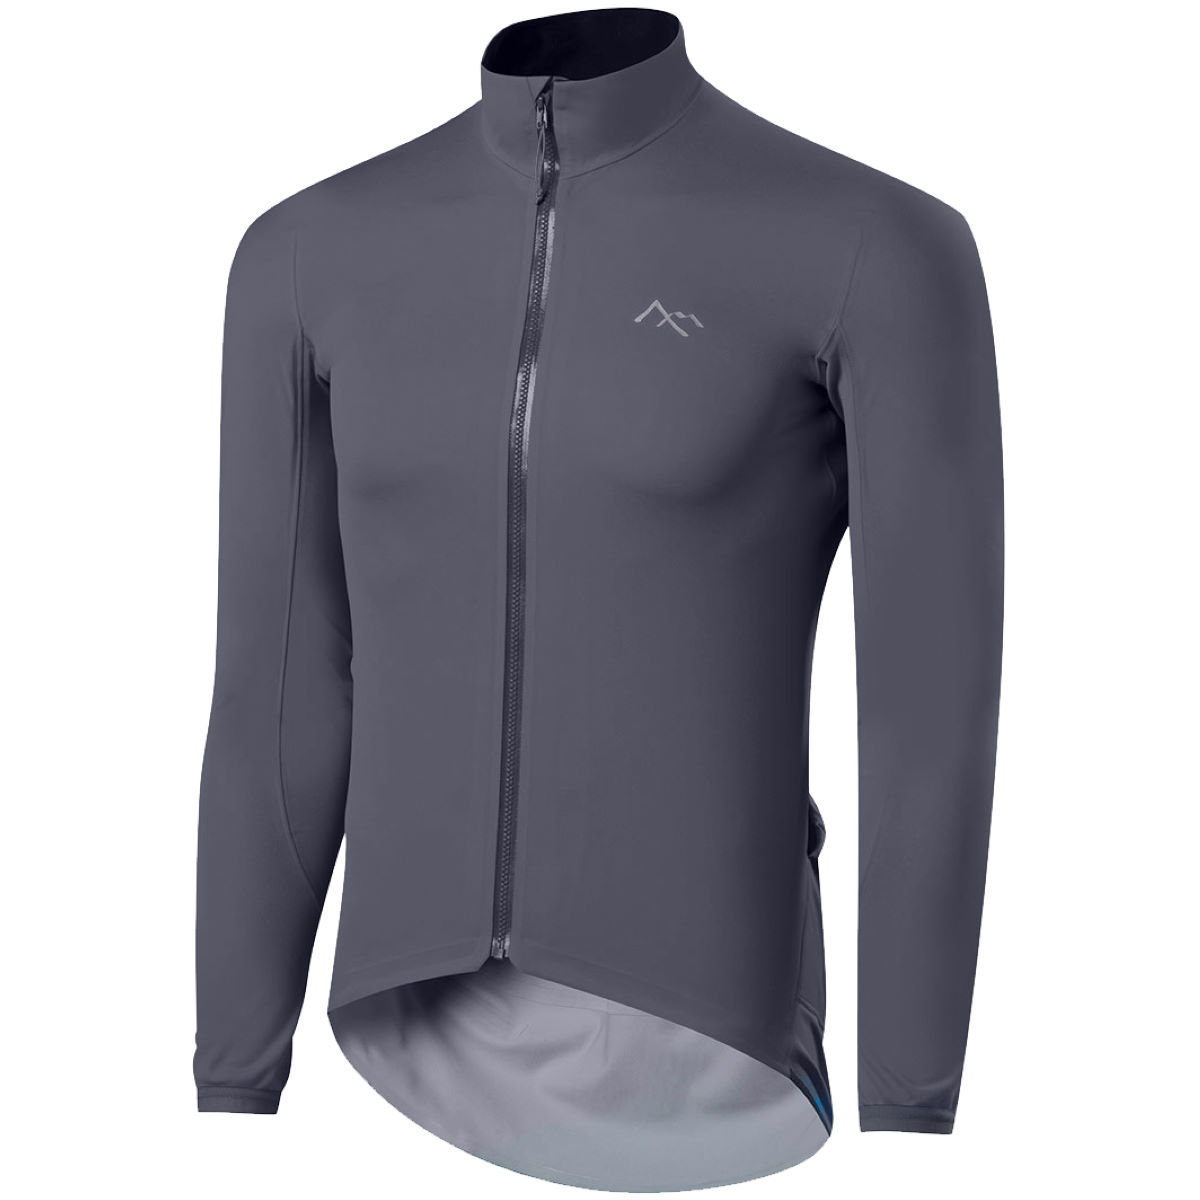 Maillot 7Mesh Corsa Windstopper Softshell - 2XL Ash  Coupe-vents vélo